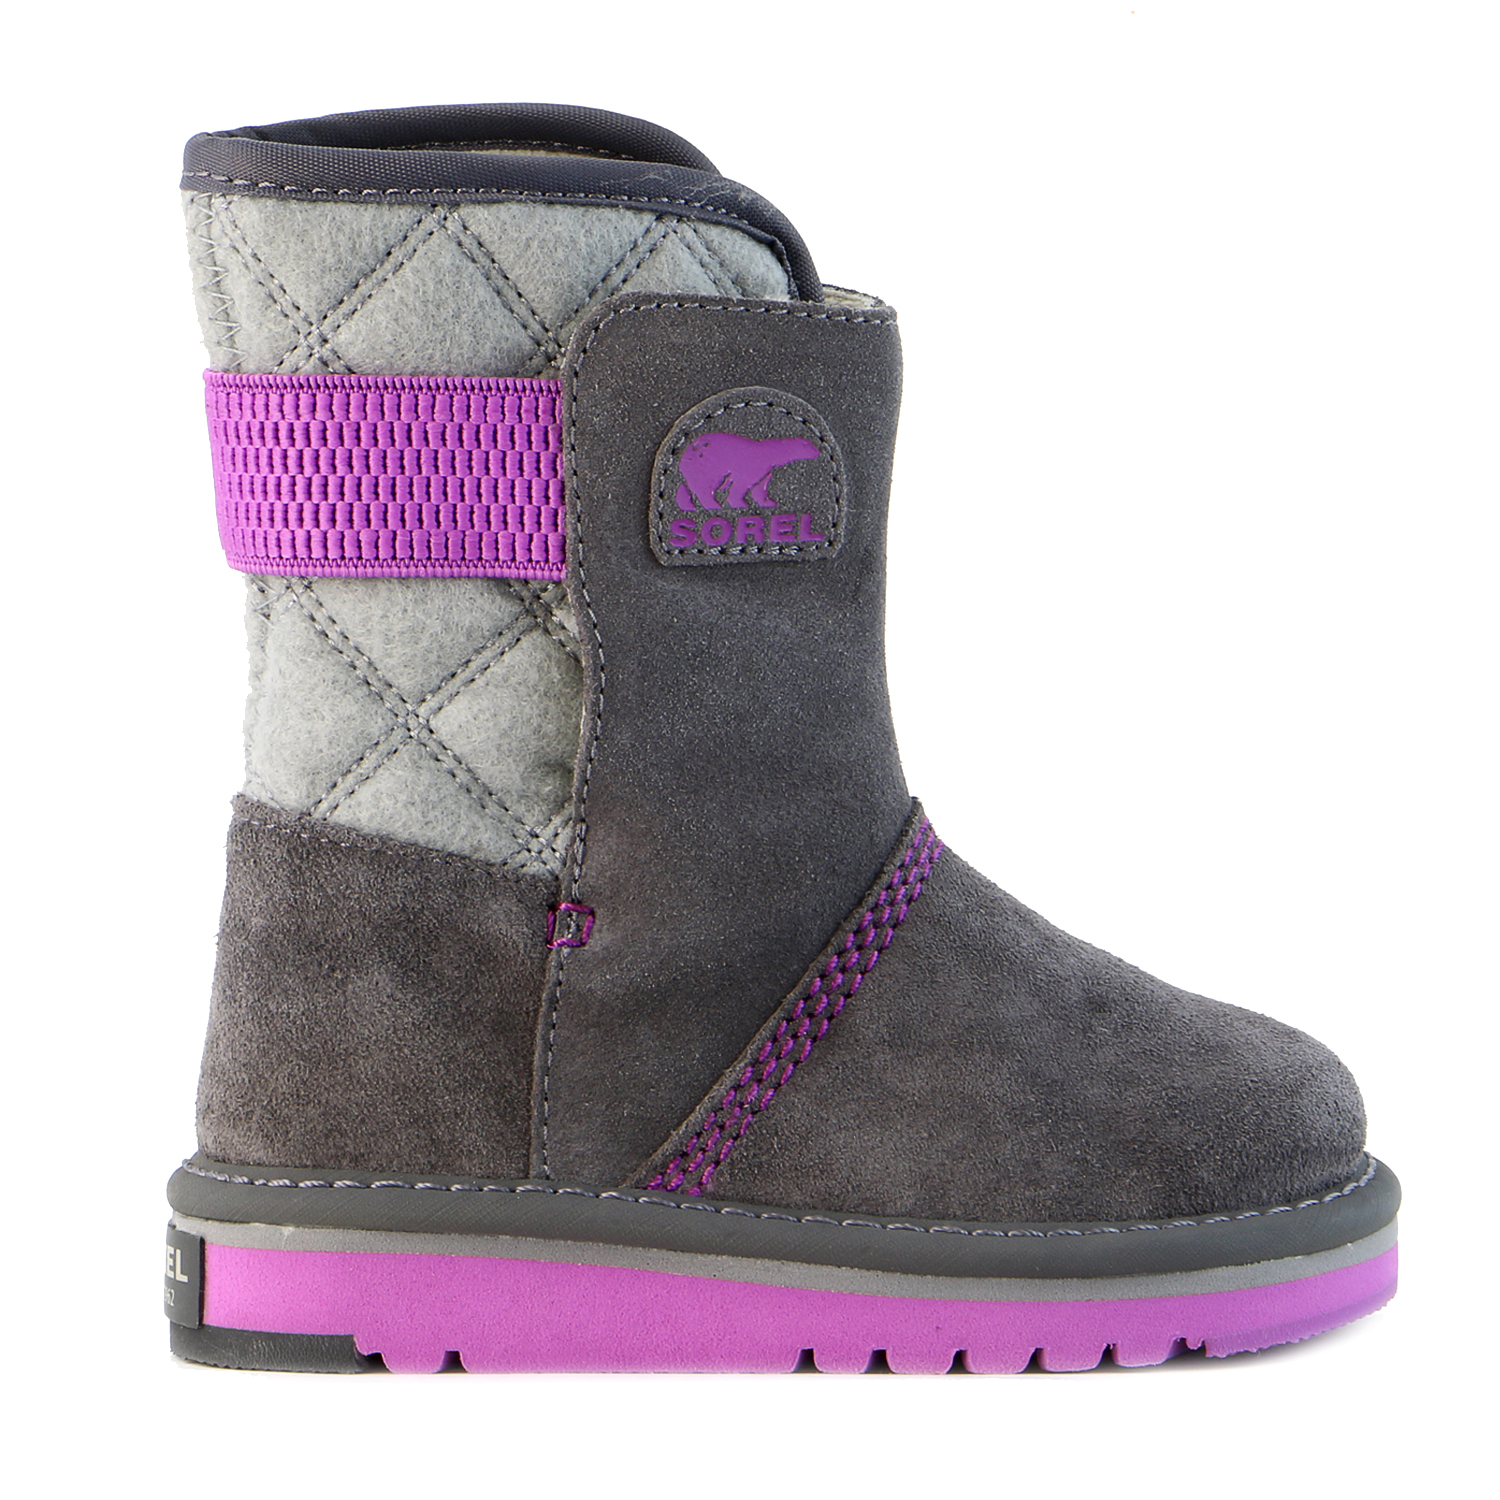 Sorel Campus Boot - Girls Economical, stylish, and eye-catching shoes